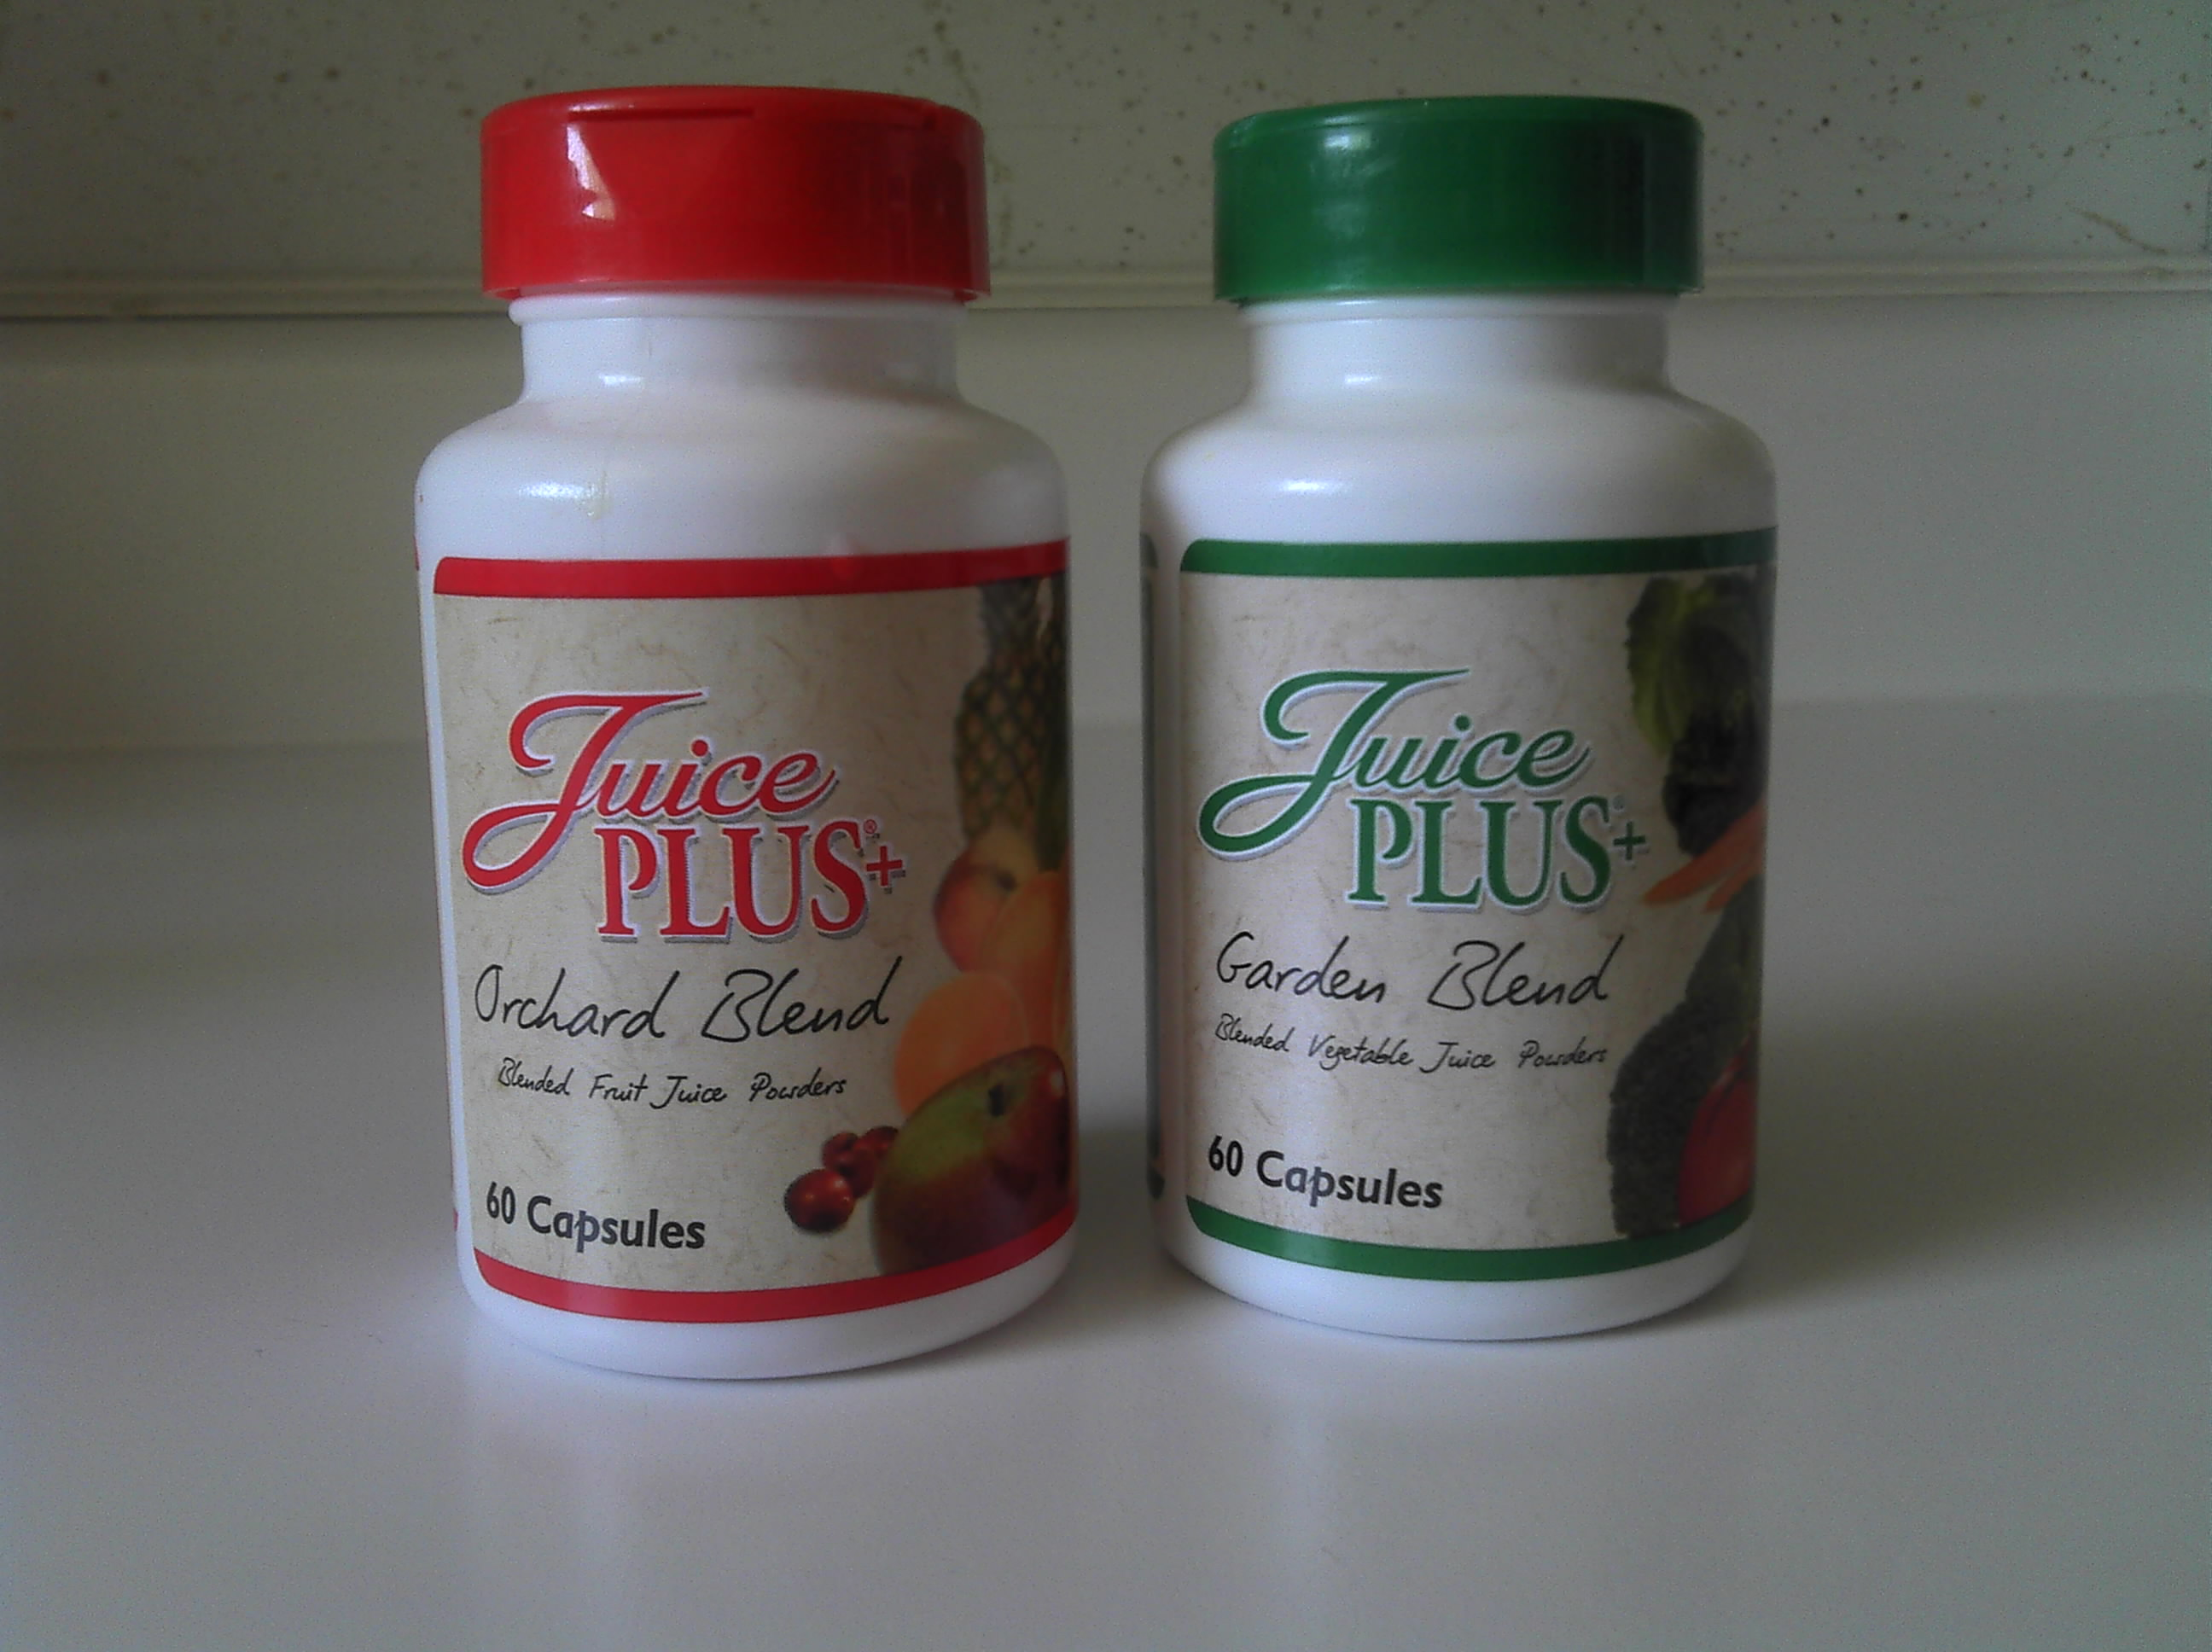 Juice Plus bottles